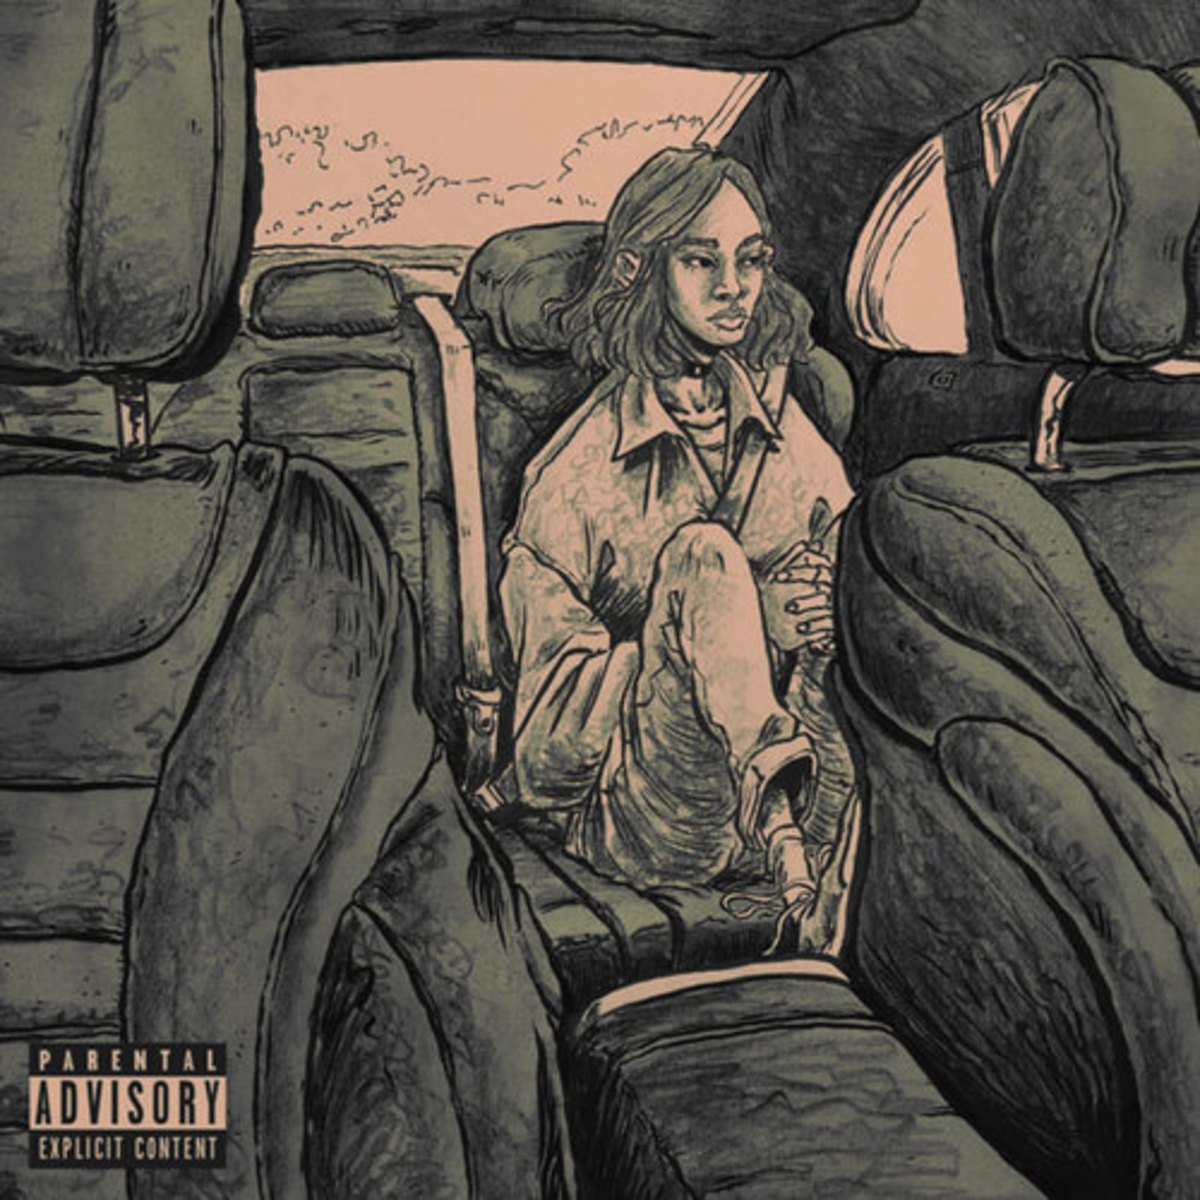 little-simz-backseat.jpg